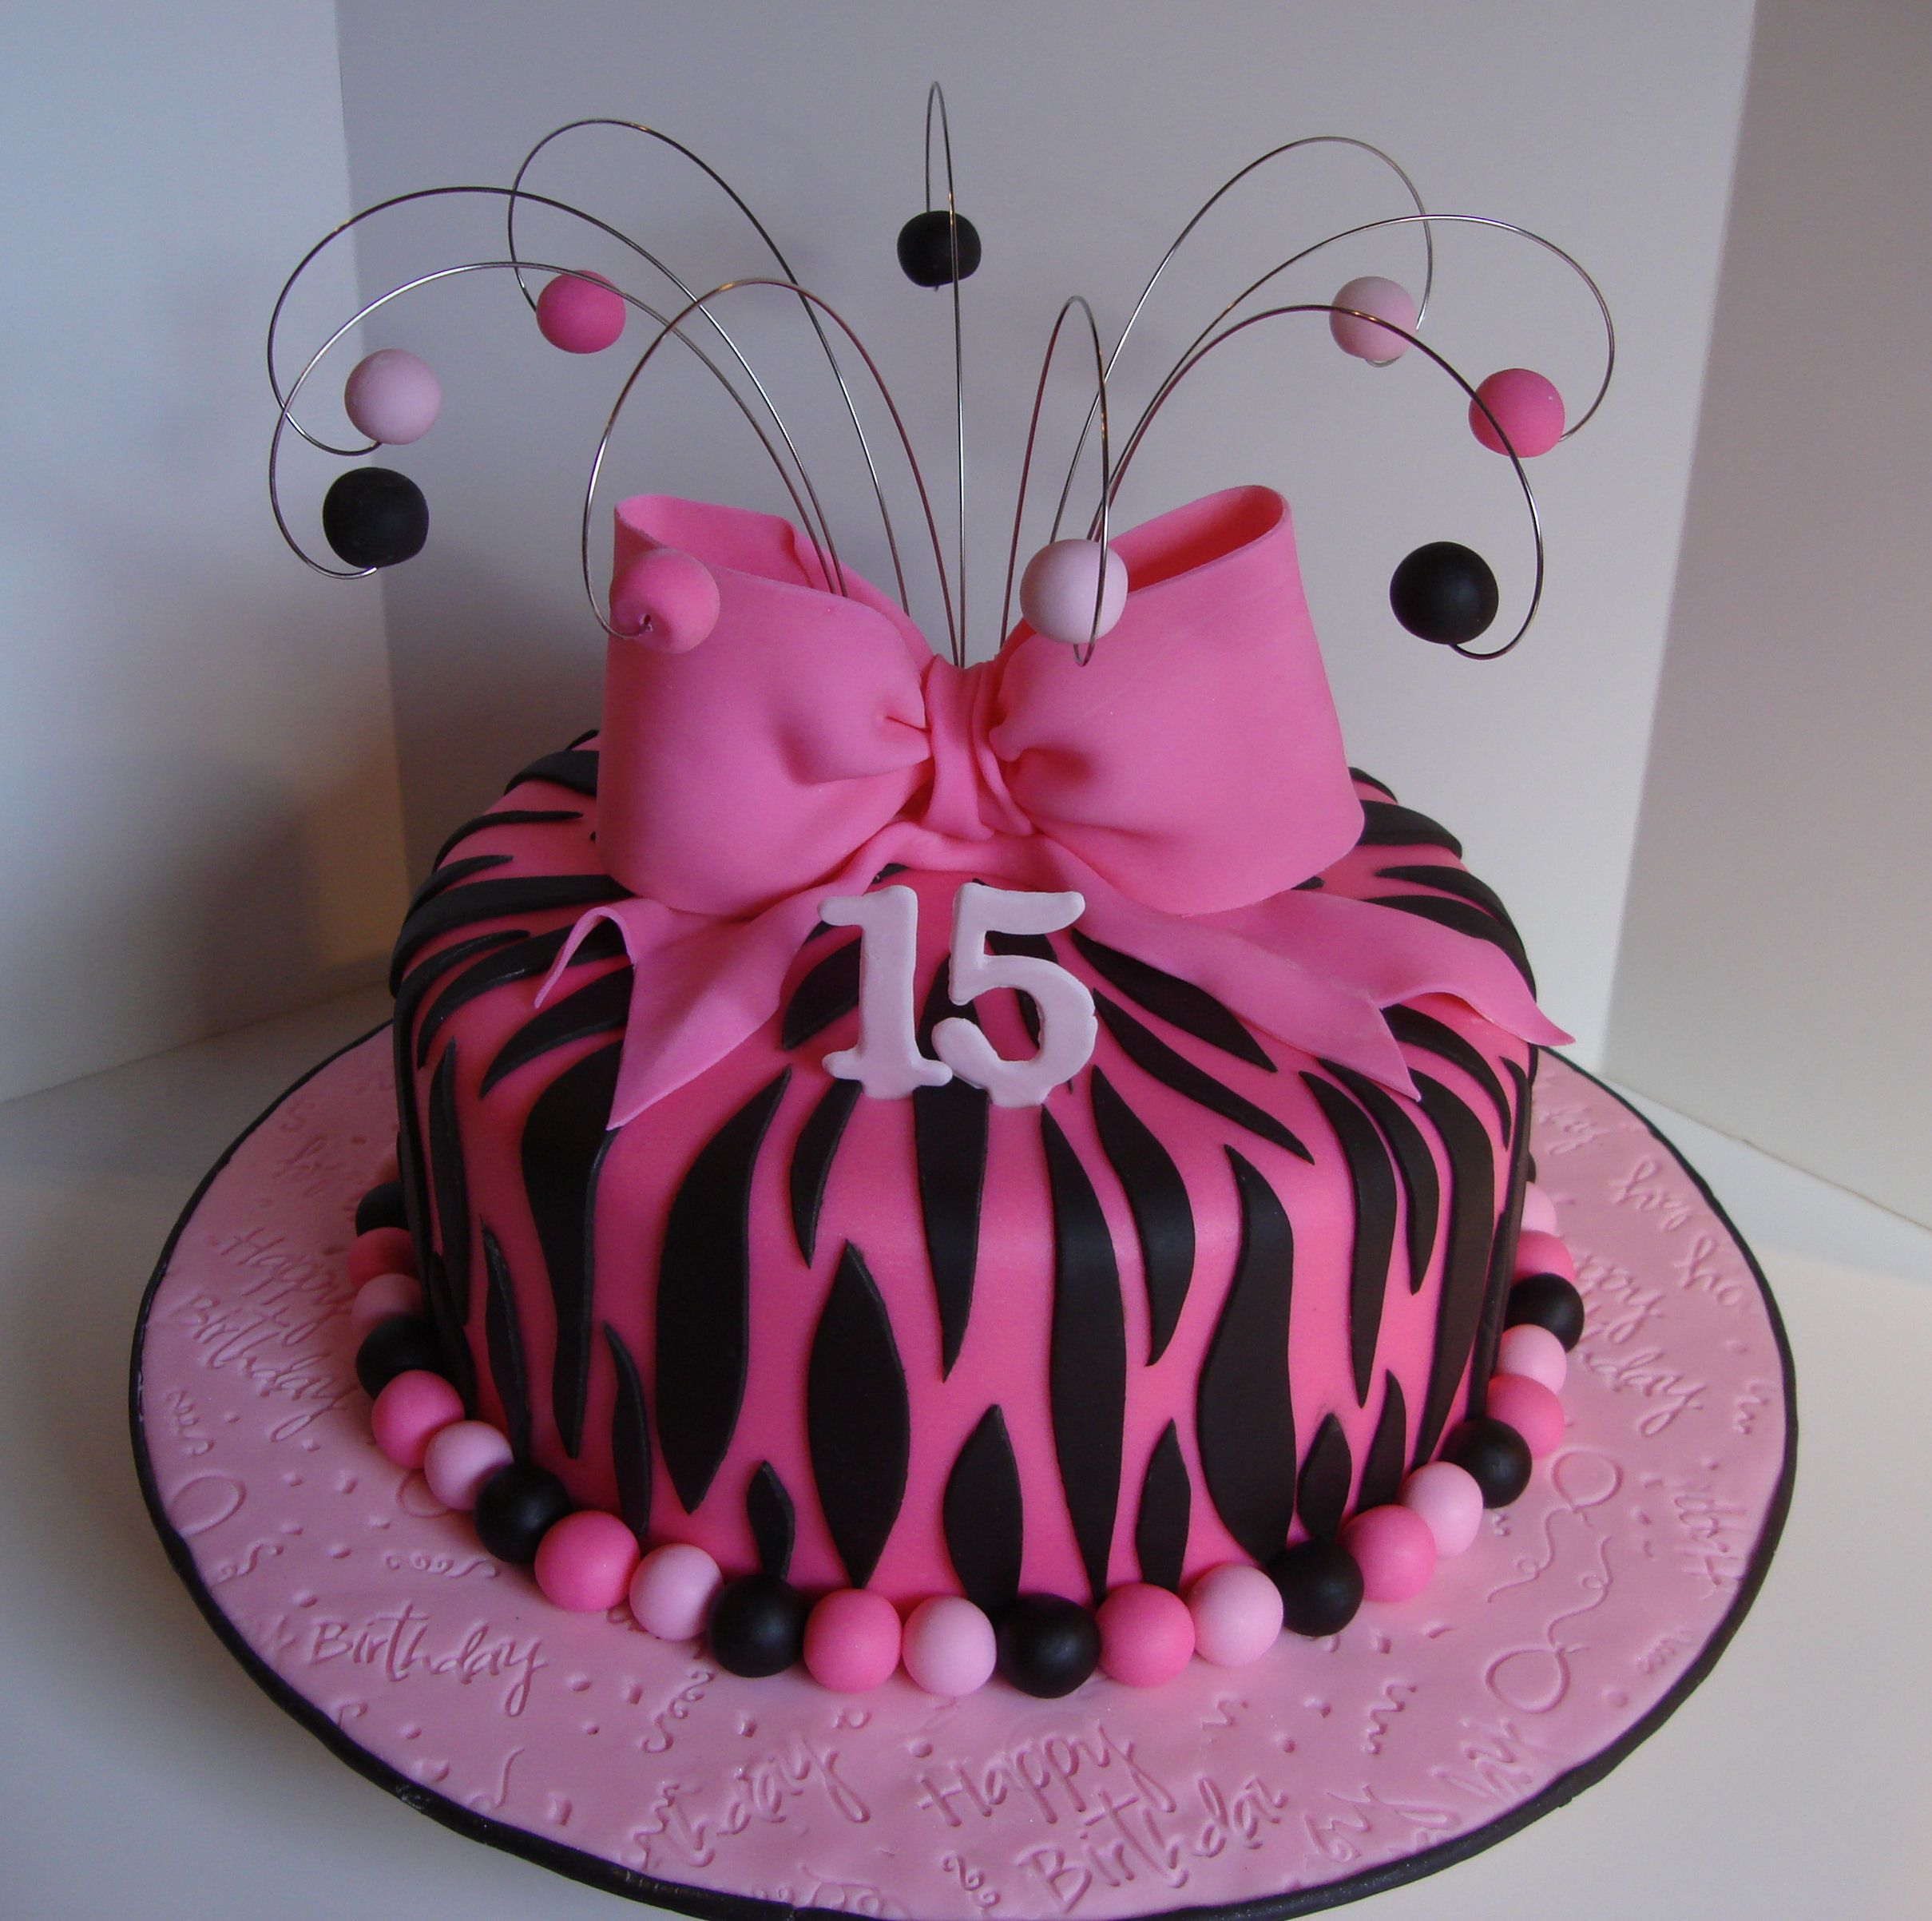 Pink Zebra Birthday Cake Is 10 Sour Cream Vanilla Colored